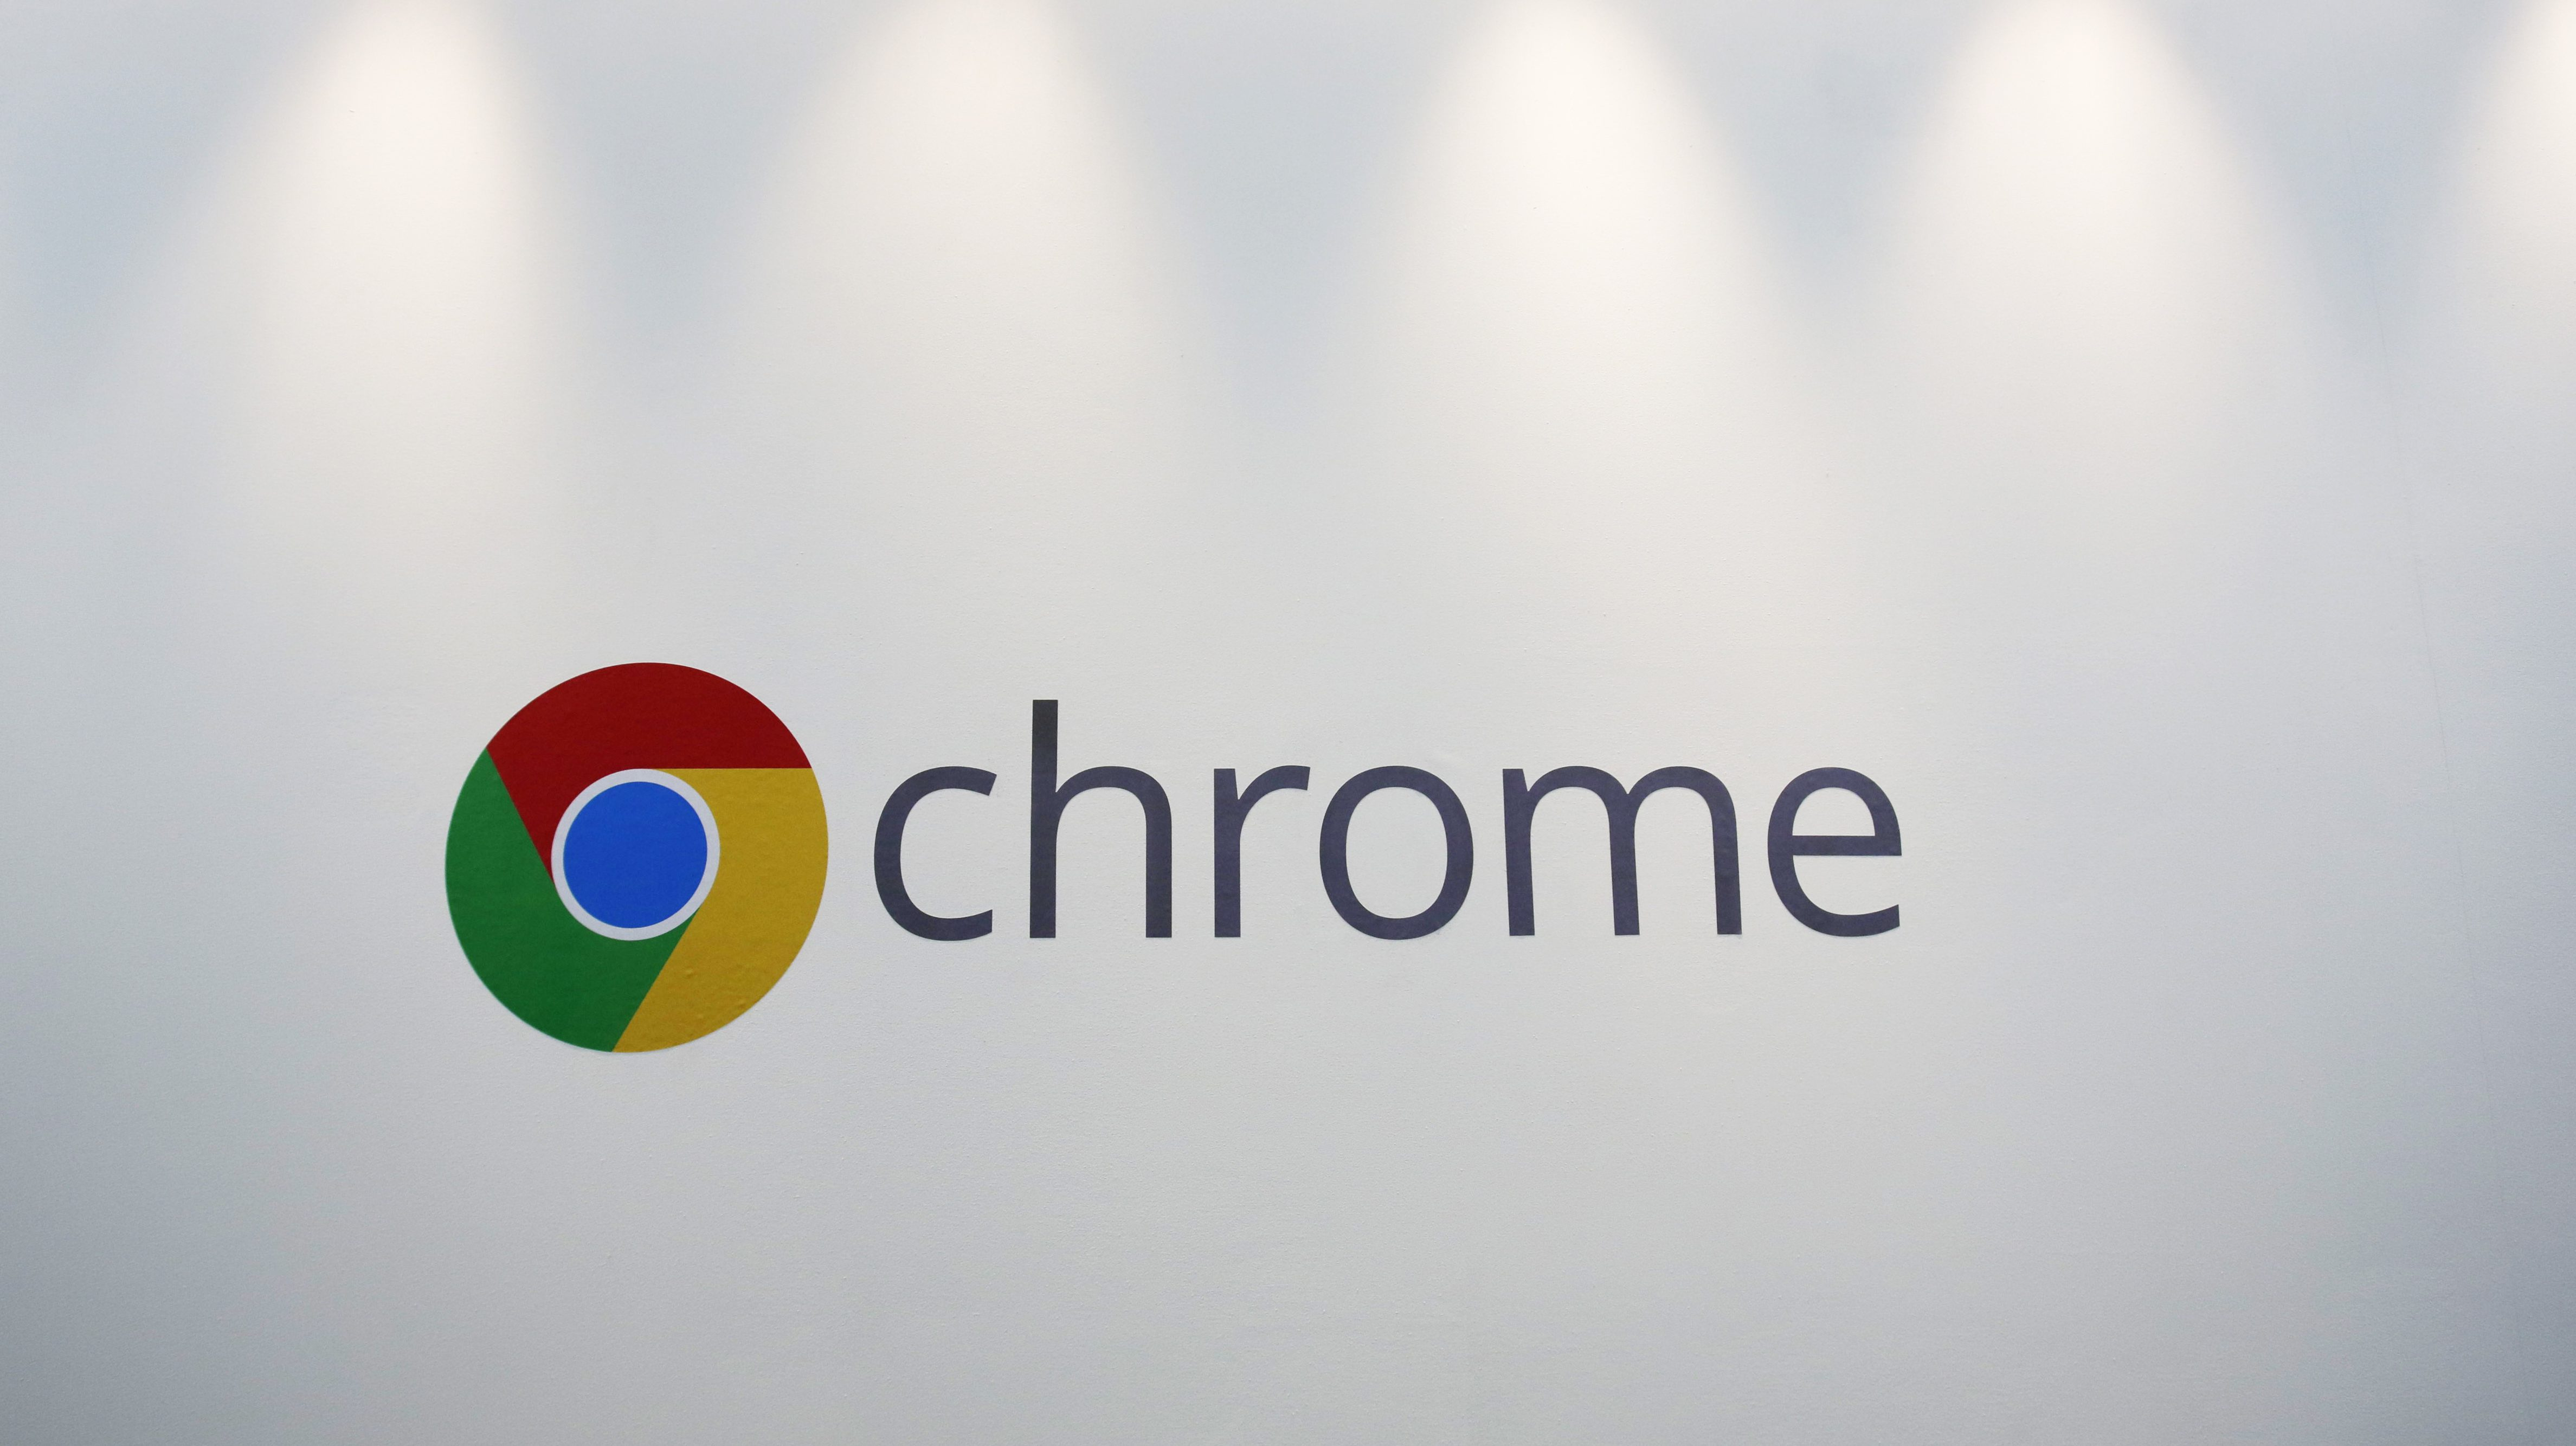 FILE - This Tuesday, Oct. 8, 2013, file photo, shows the Chrome logo displayed at a Google event, in New York. Google says its Chrome browser will block ads on websites it deems too annoying for web users starting in 2018. The digital-ad giant's announcement comes as hundreds of millions of internet users fed up with ads that track them and make browsing sites difficult have already installed ad blockers on their desktop computers and phones. (AP Photo/Mark Lennihan, File)